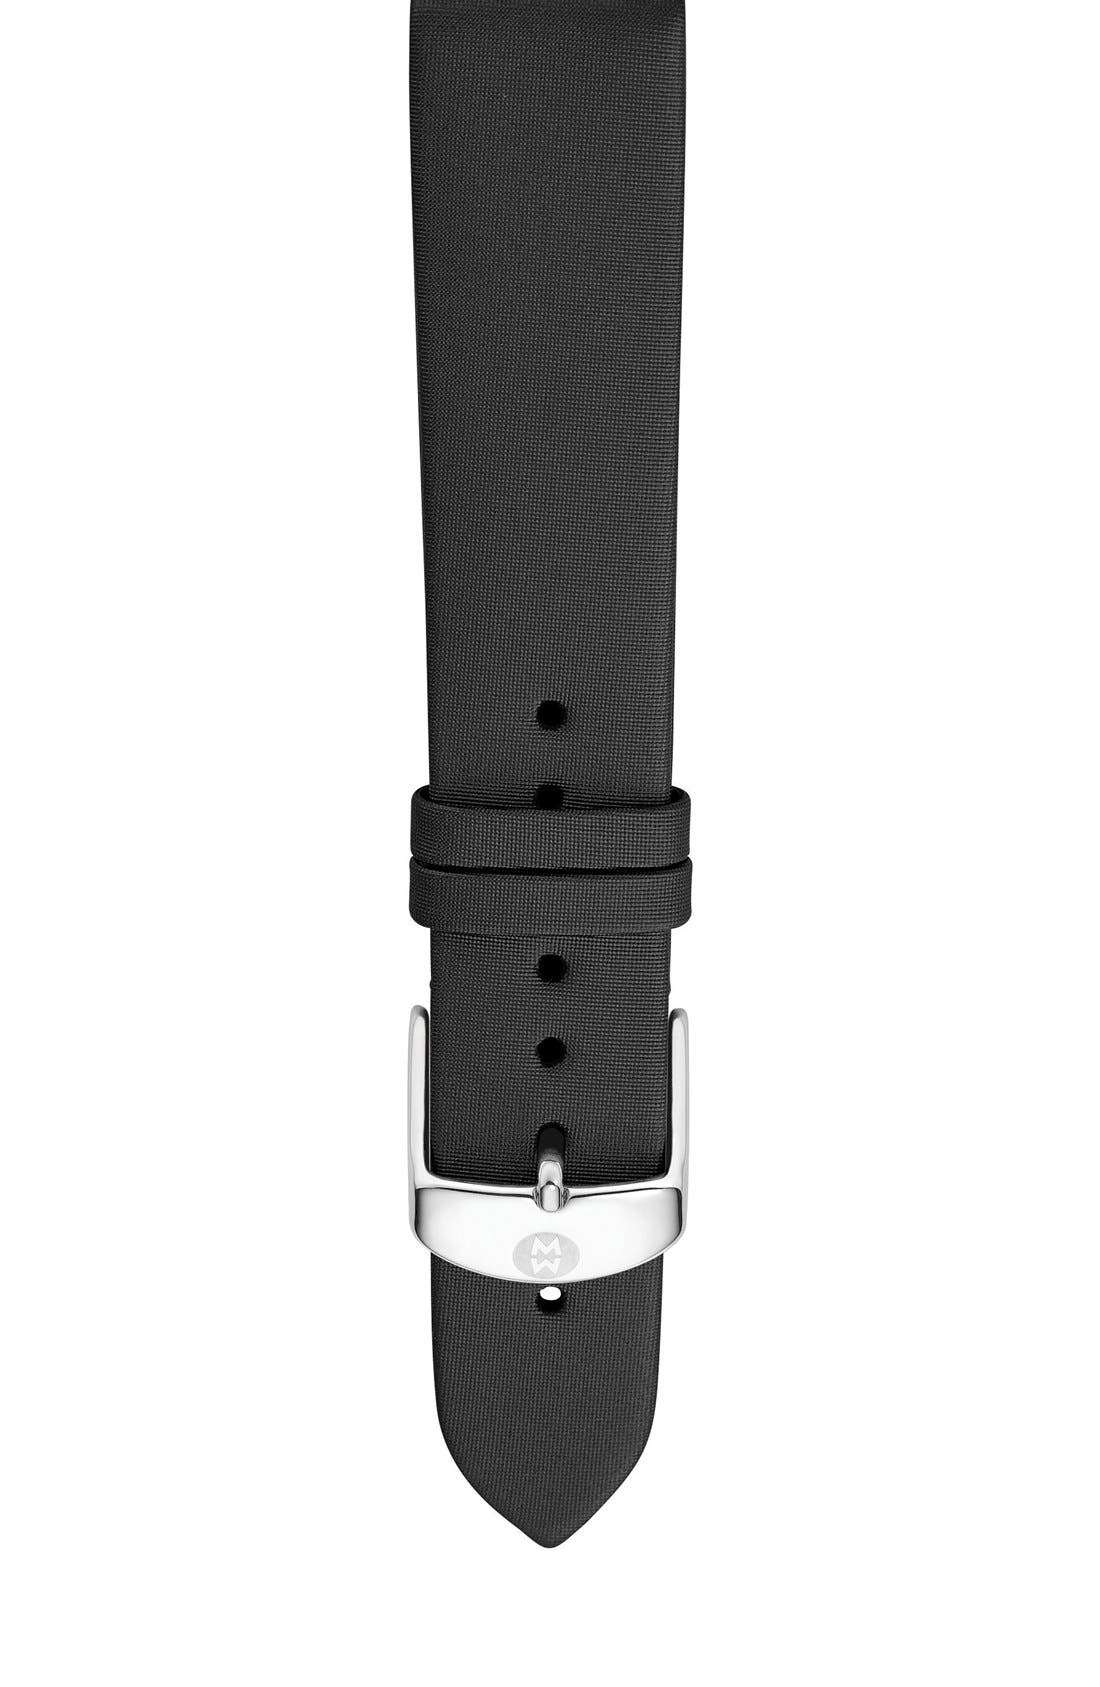 16mm Satin Watch Strap,                             Main thumbnail 1, color,                             BLACK